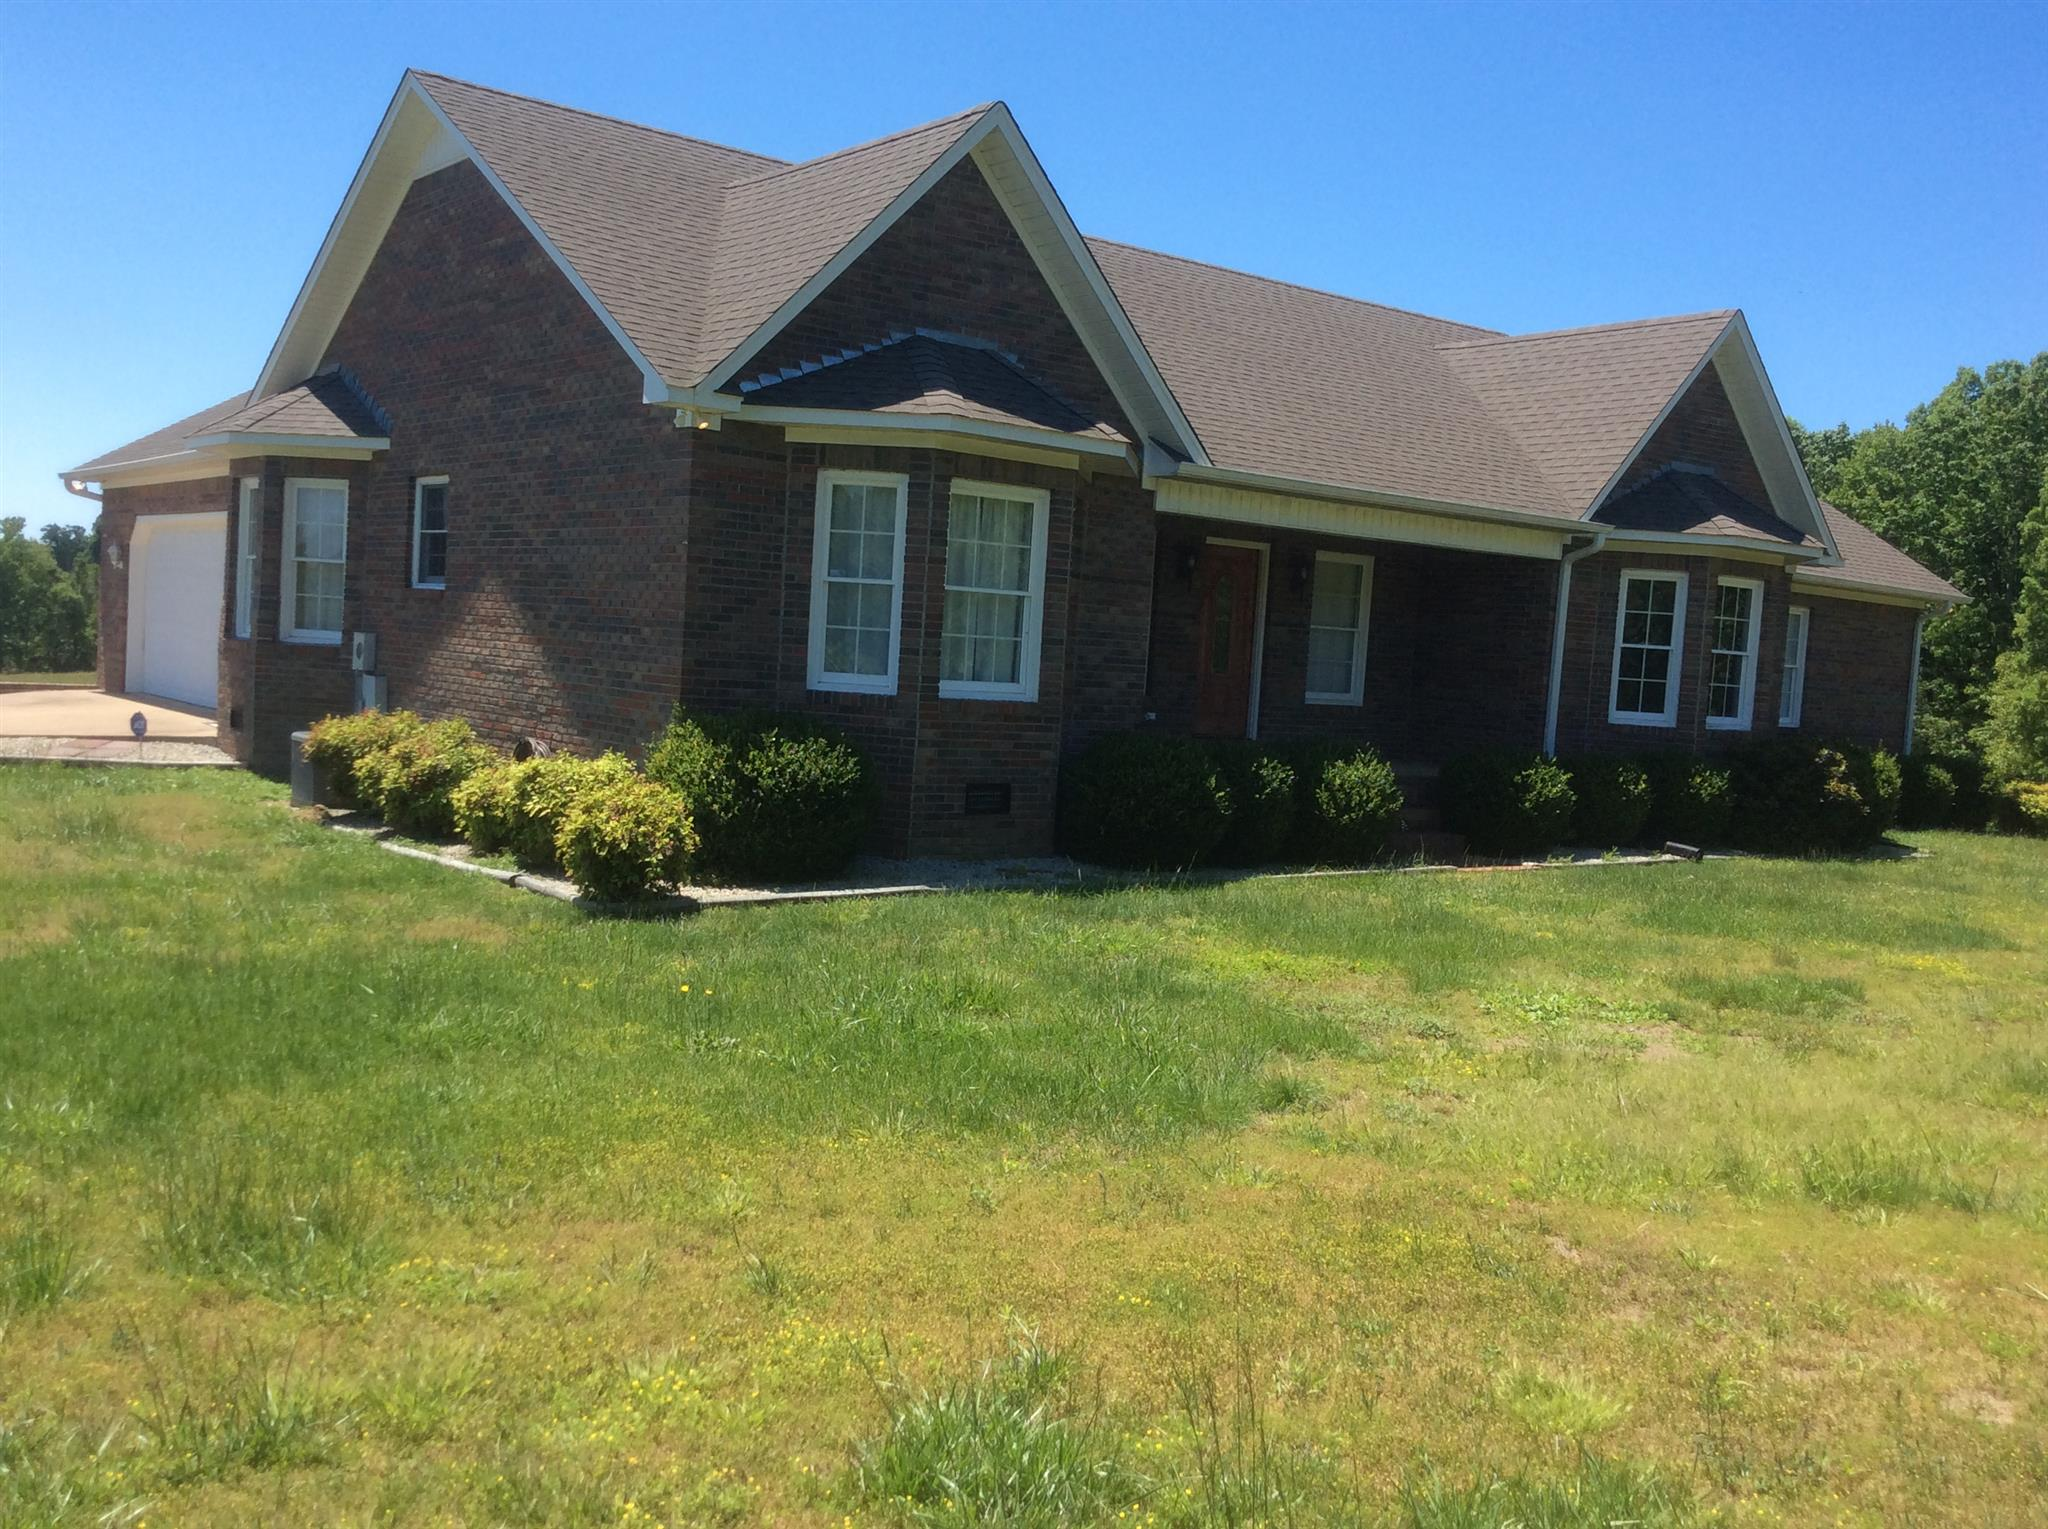 1195 Percy Brewer Rd, Collinwood, TN 38450